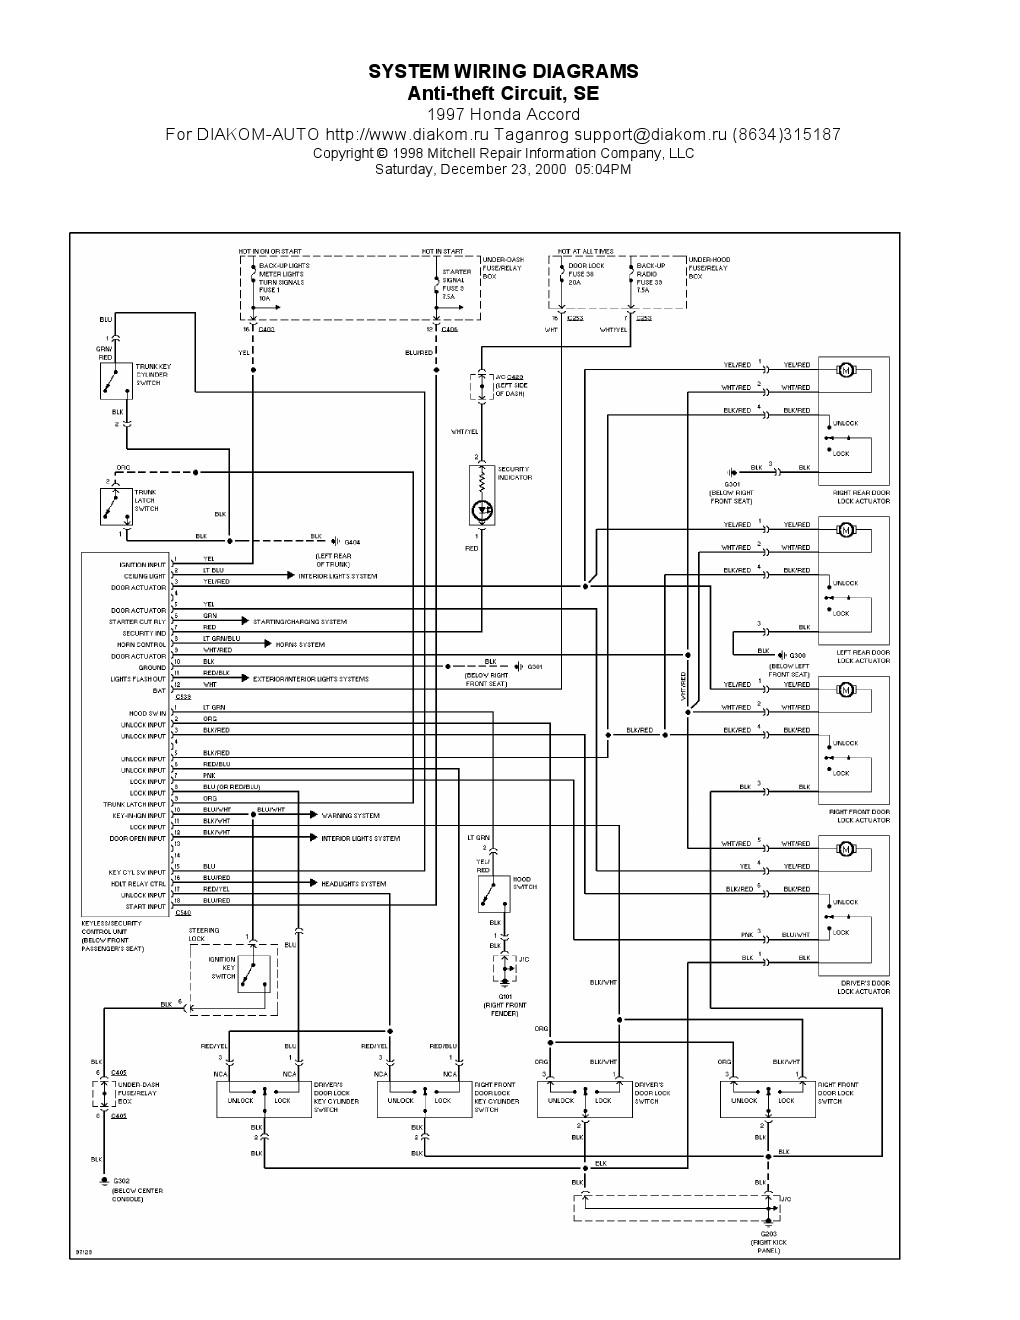 accord wiring diagram general wiring diagram information u2022 rh velvetfive co uk wiring diagram honda accord 2005 wiring diagram honda accord 2005